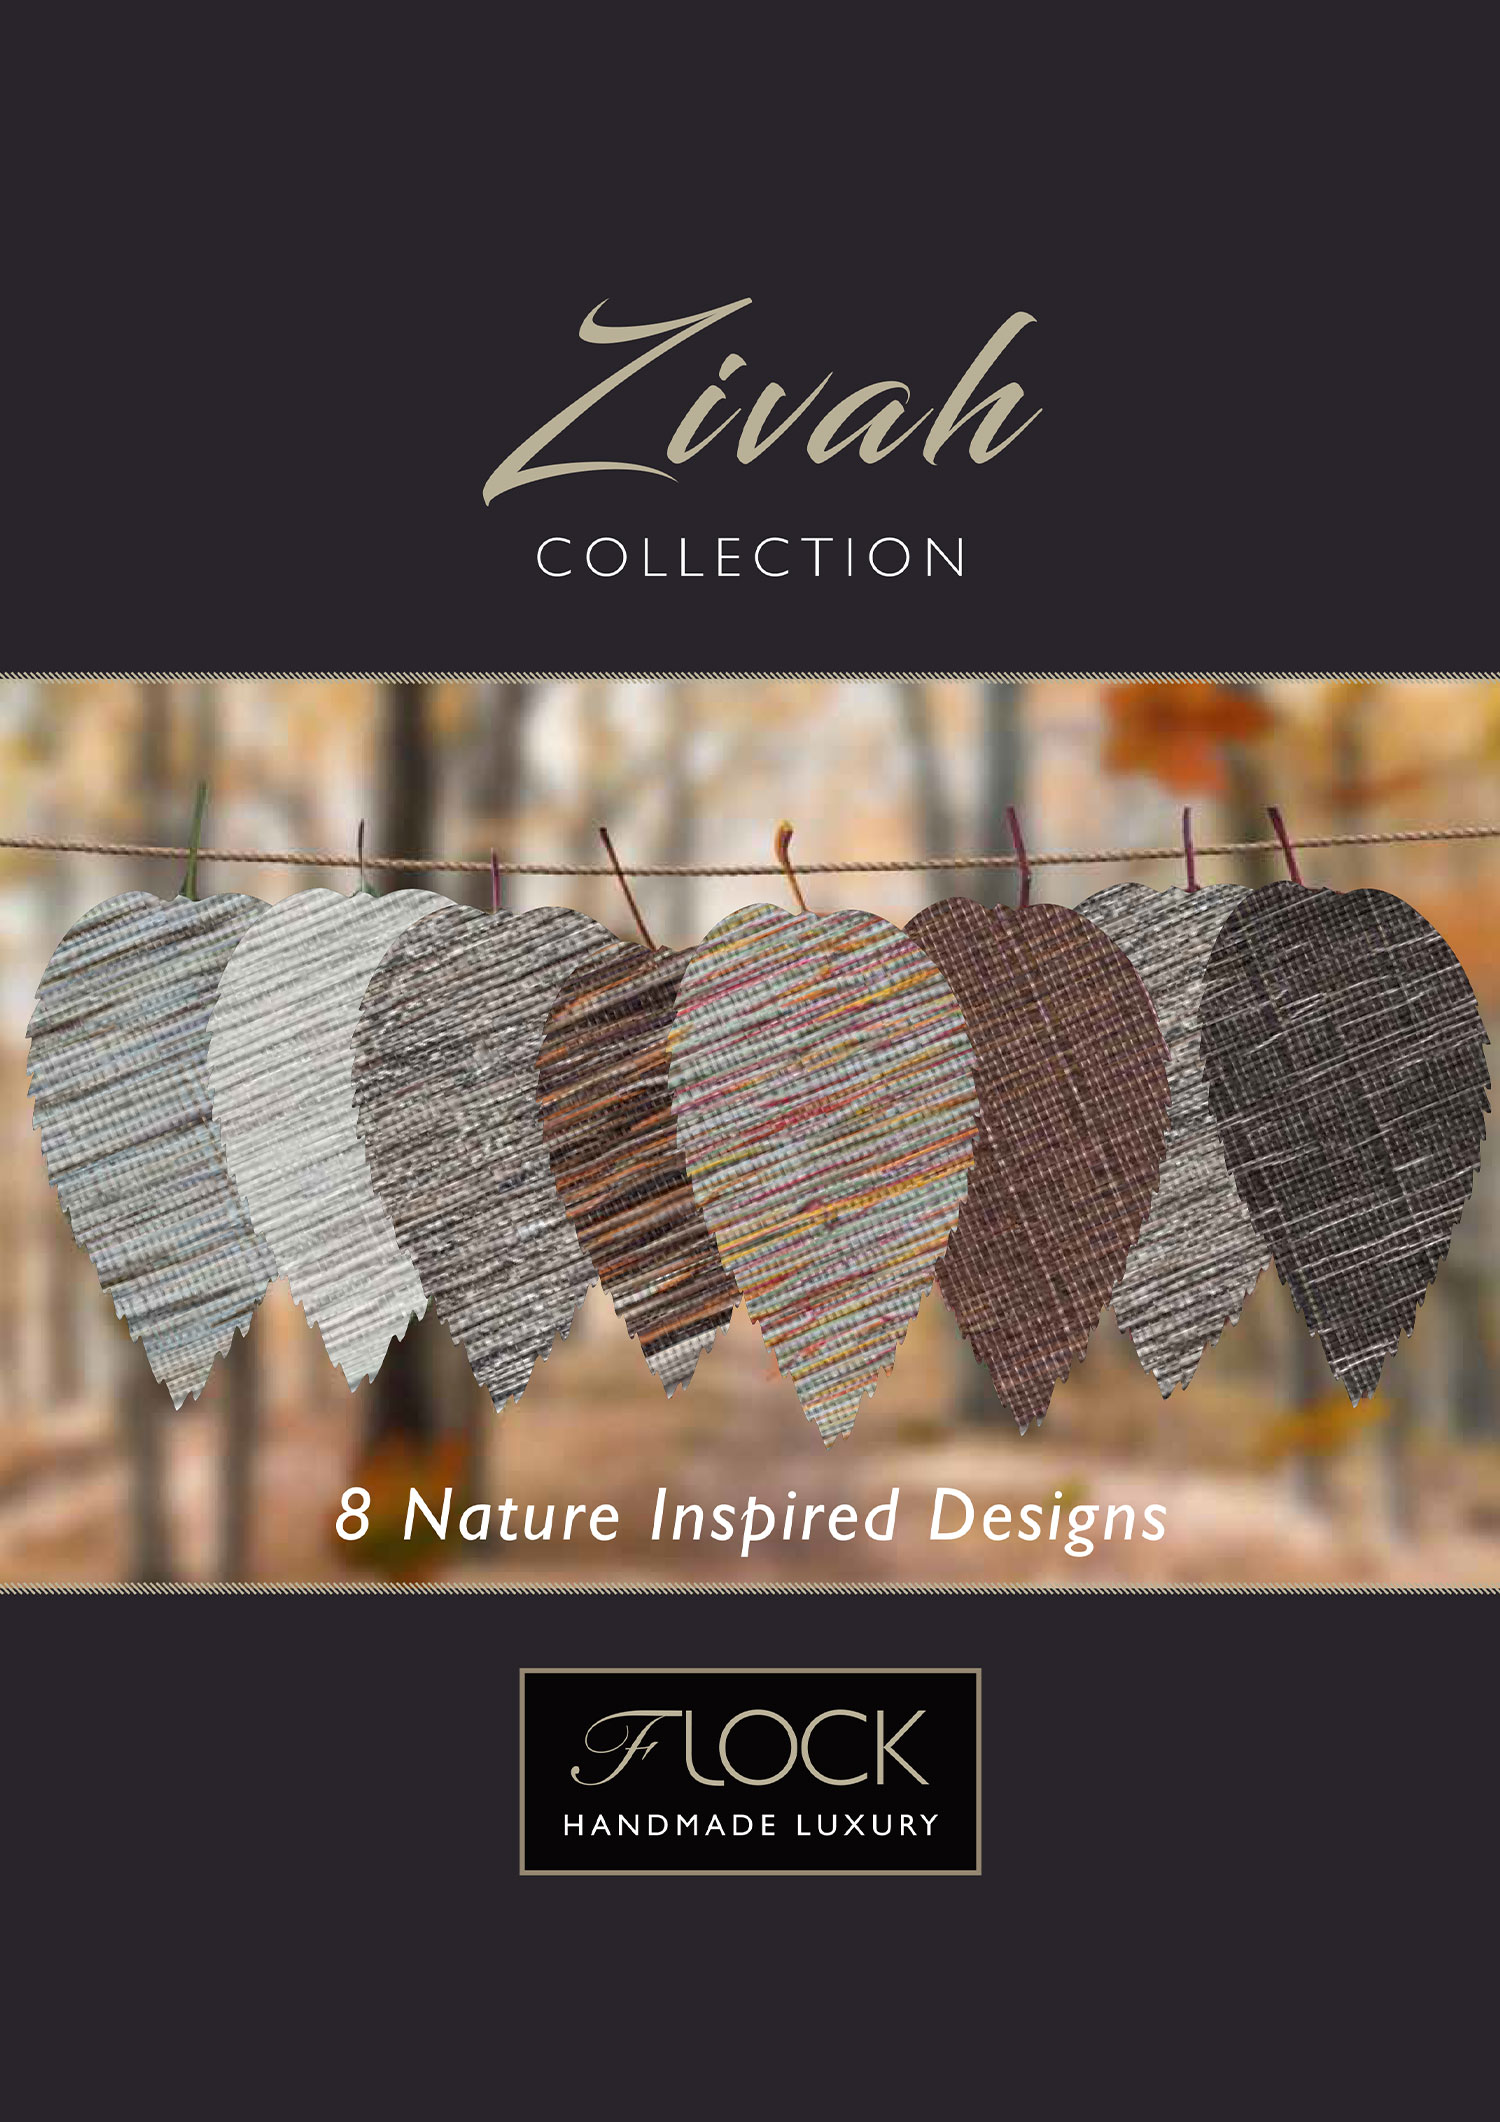 Flock-Living Limited<br>Zivah Collection